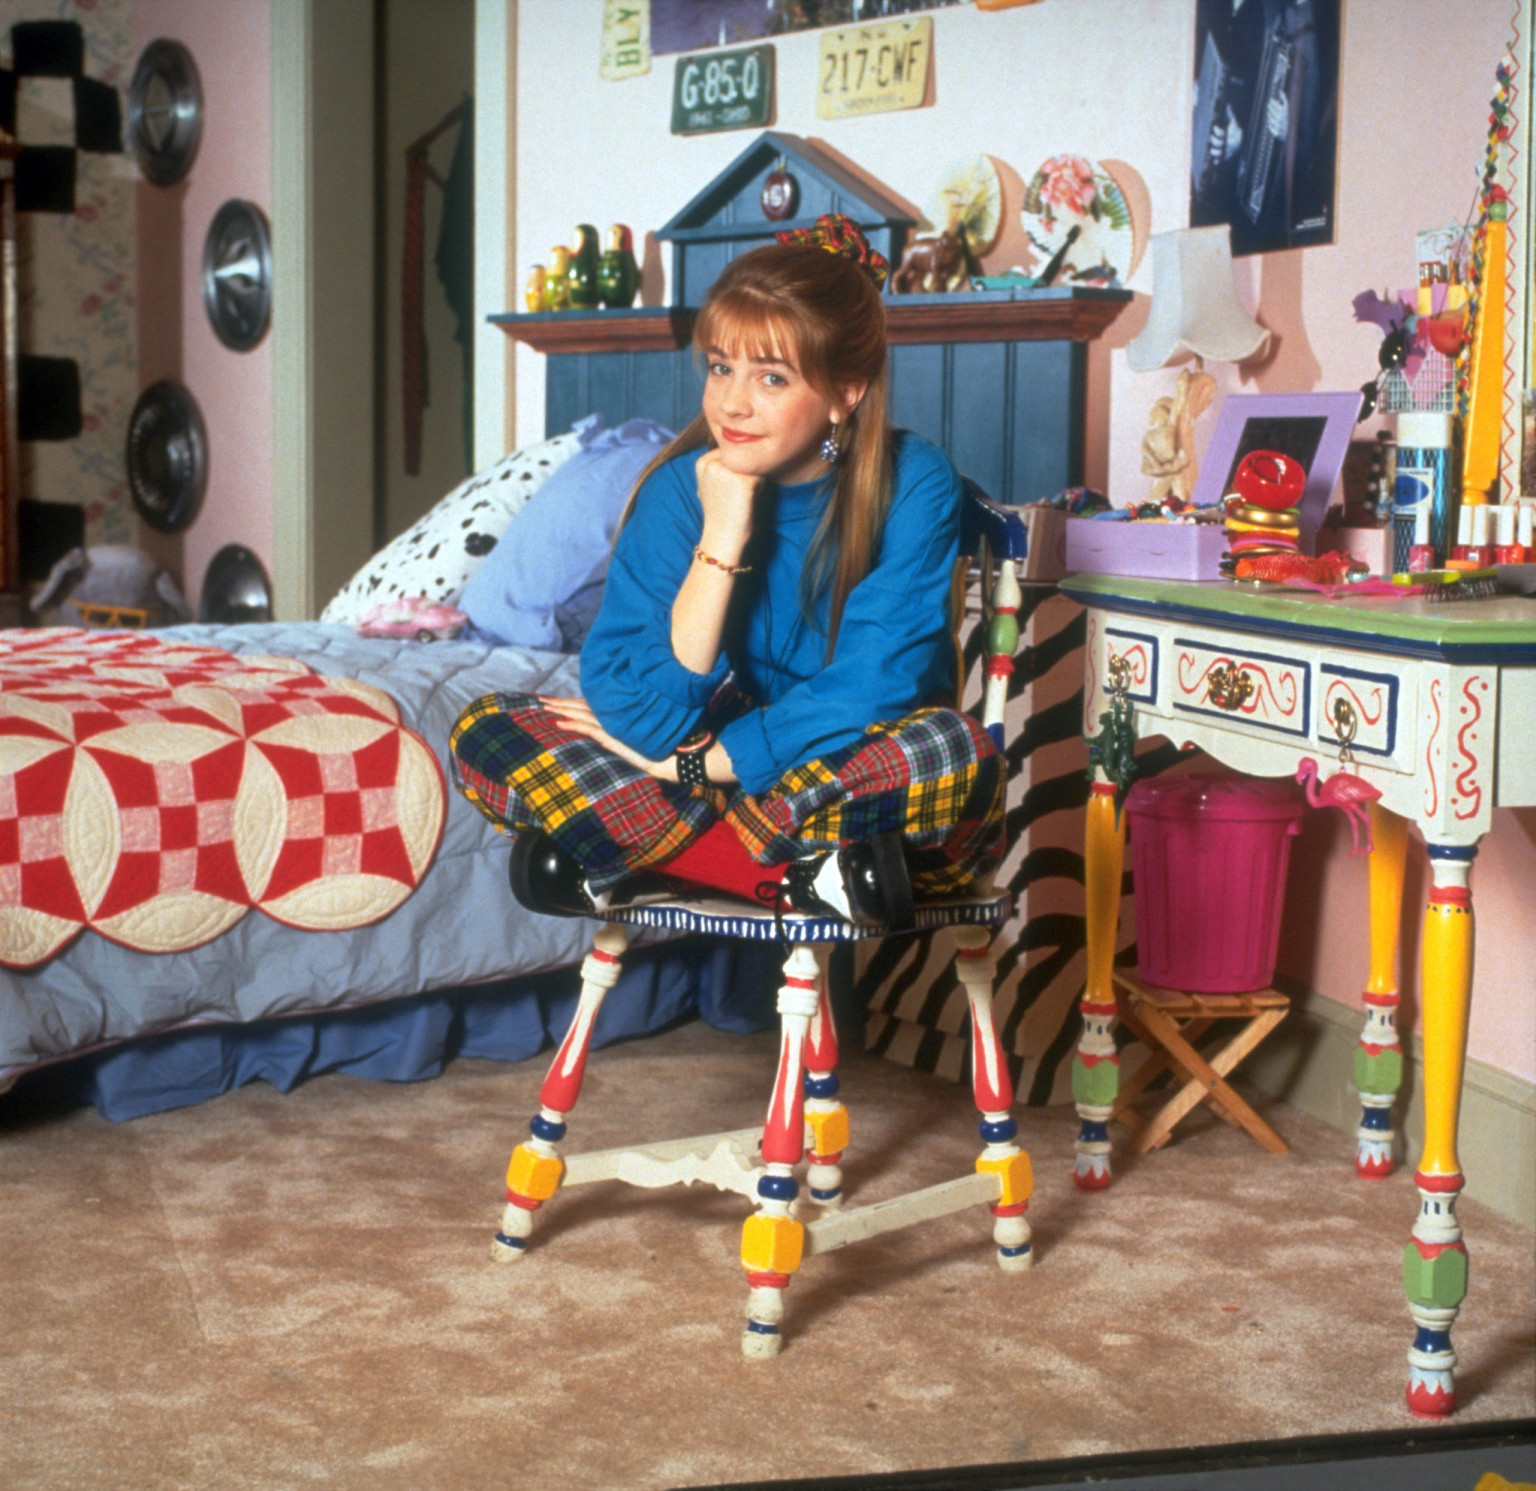 Trends From Your Tween Years That You Wouldn't Be Caught